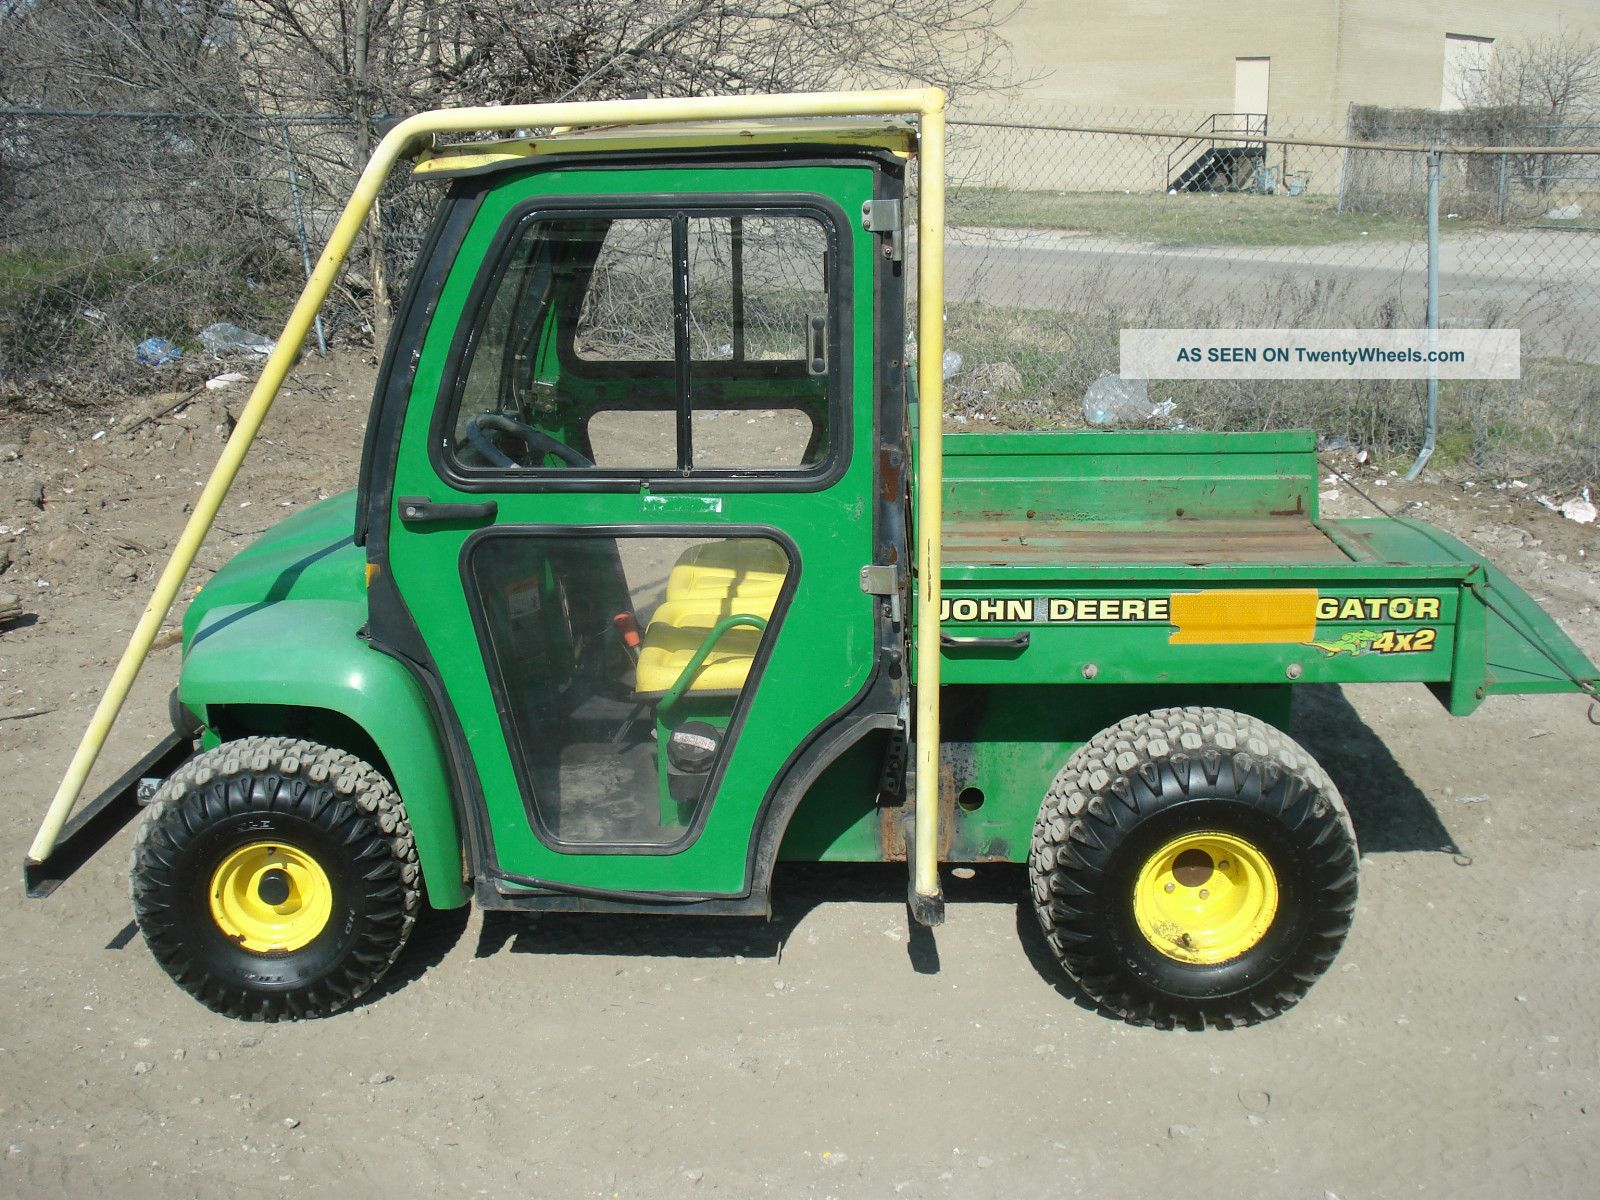 John Deere Gator 4x2 - Hard Enclosed Cab - Stay Warm And Dry Utility Vehicles photo